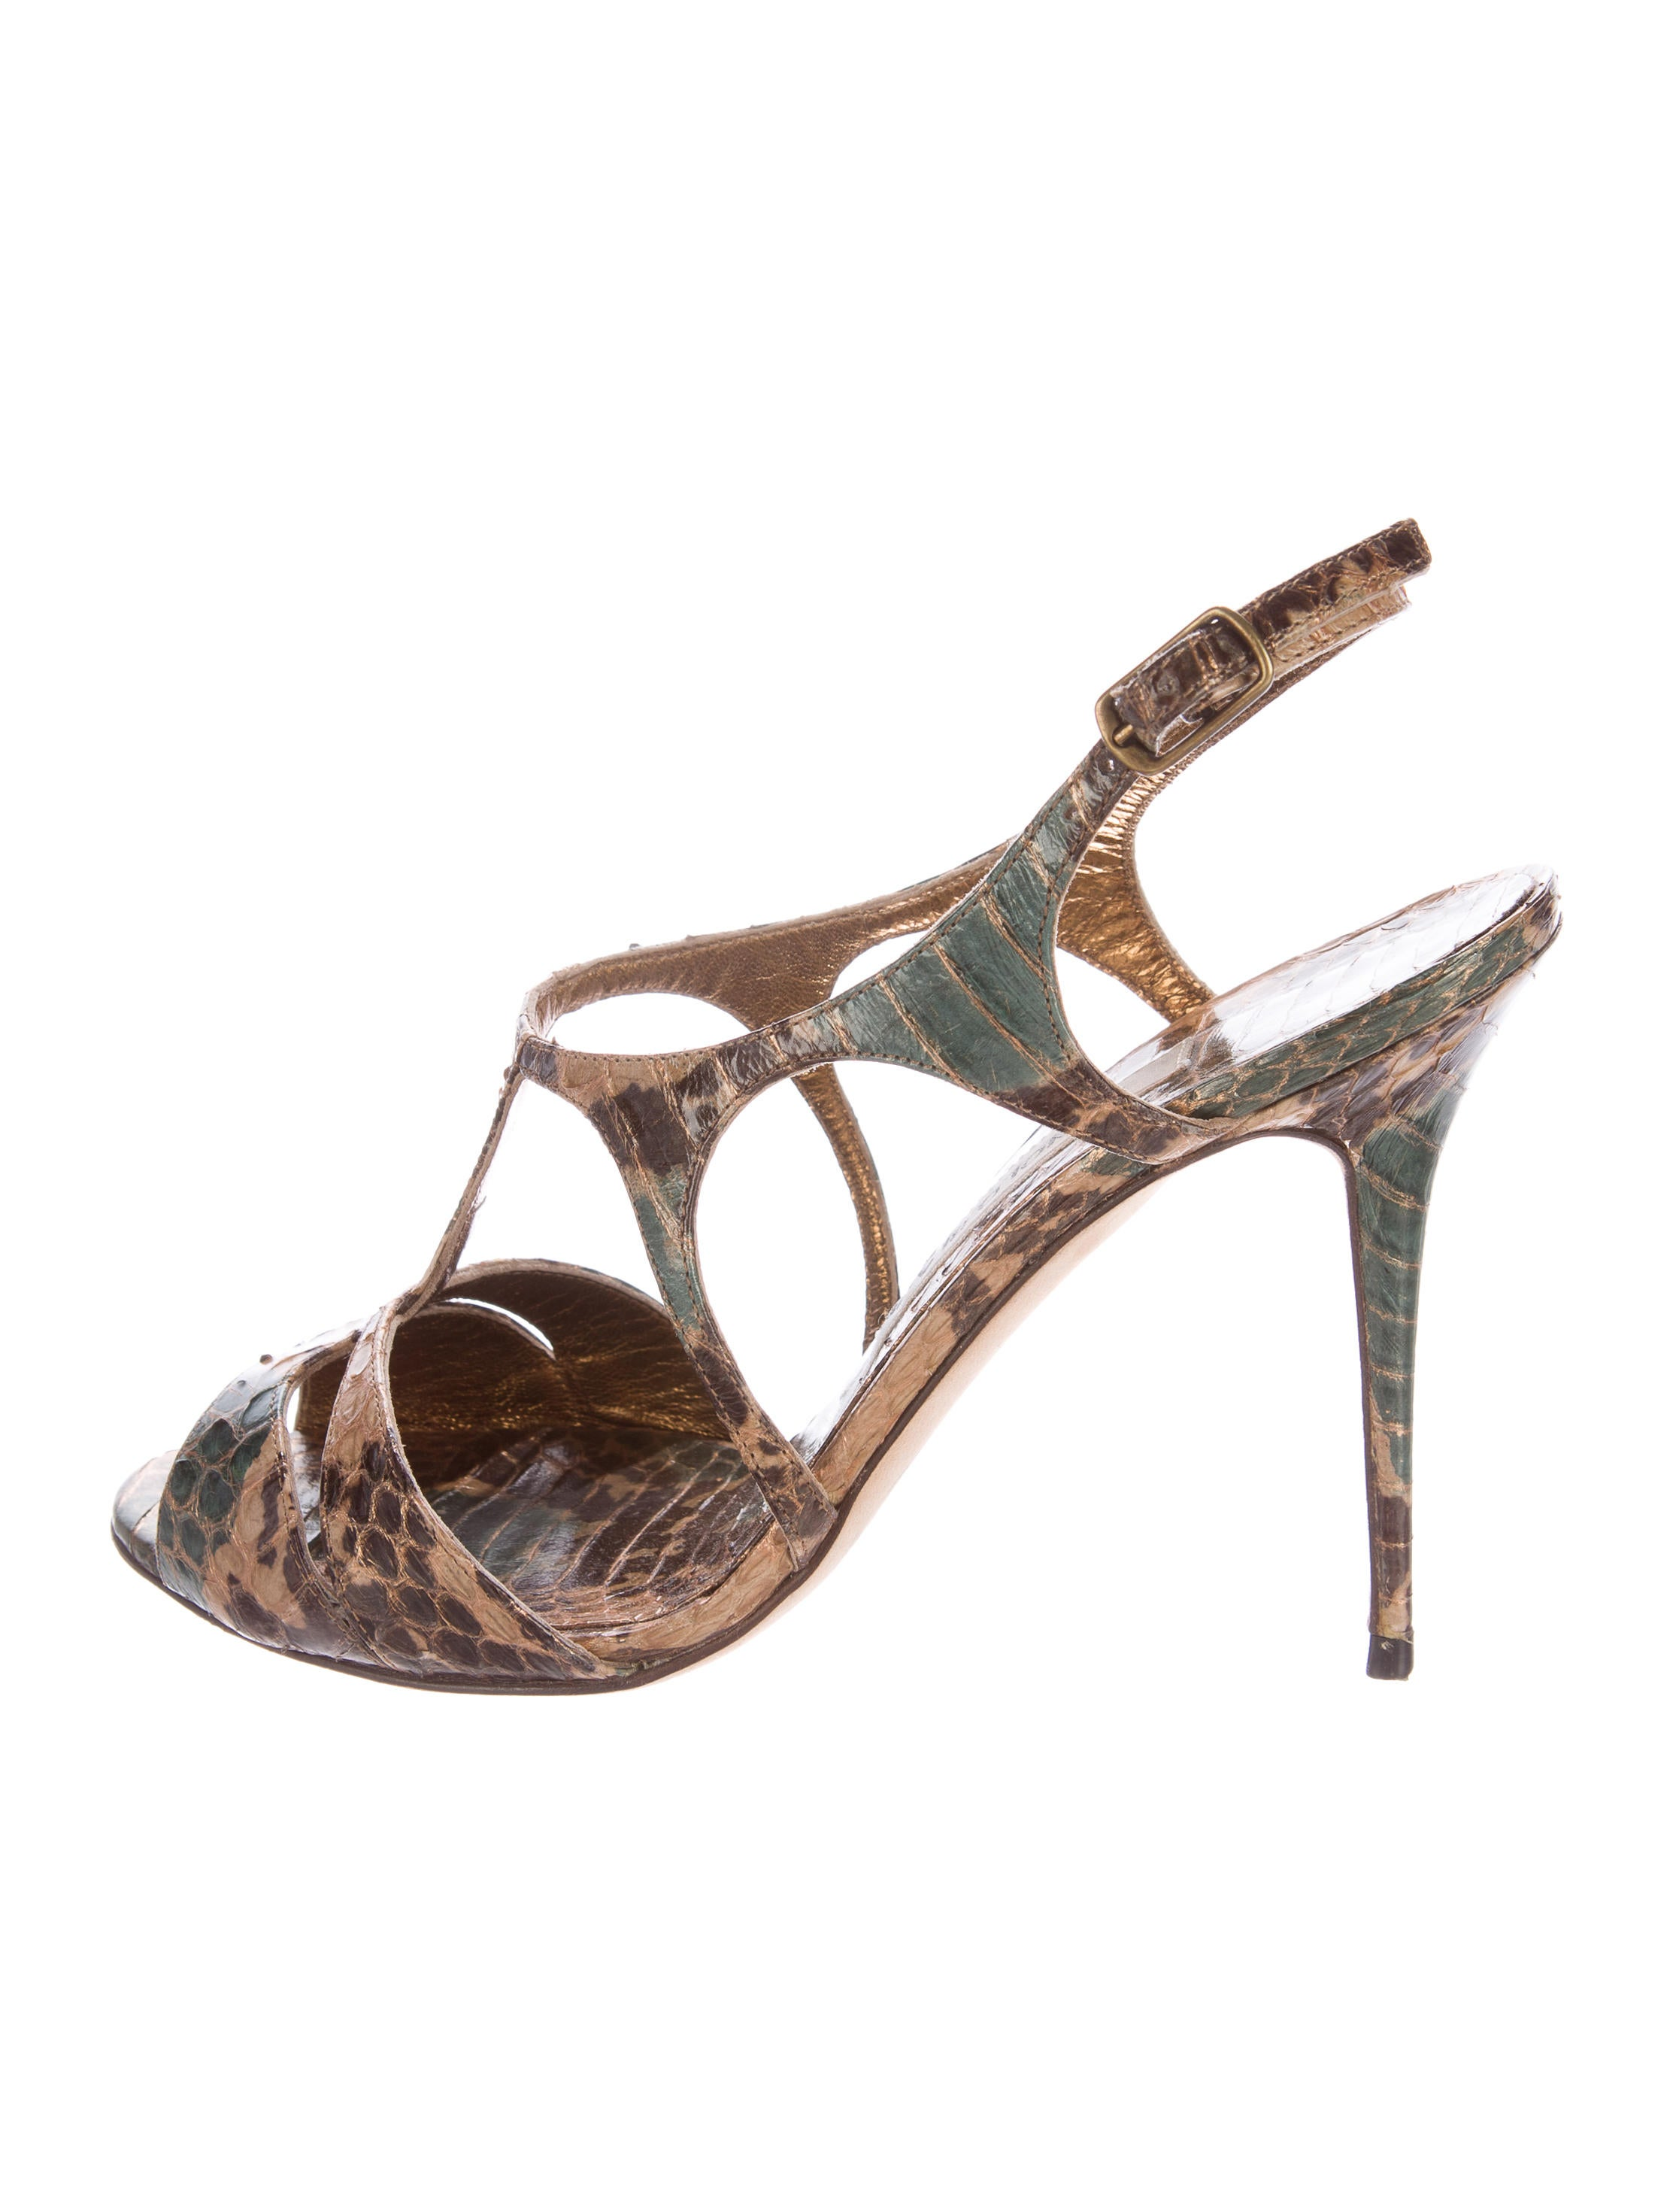 Prada Python Multistrap Sandals discount cheap online quality for sale free shipping free shipping explore sale sast discount best sale wDibNBilhJ